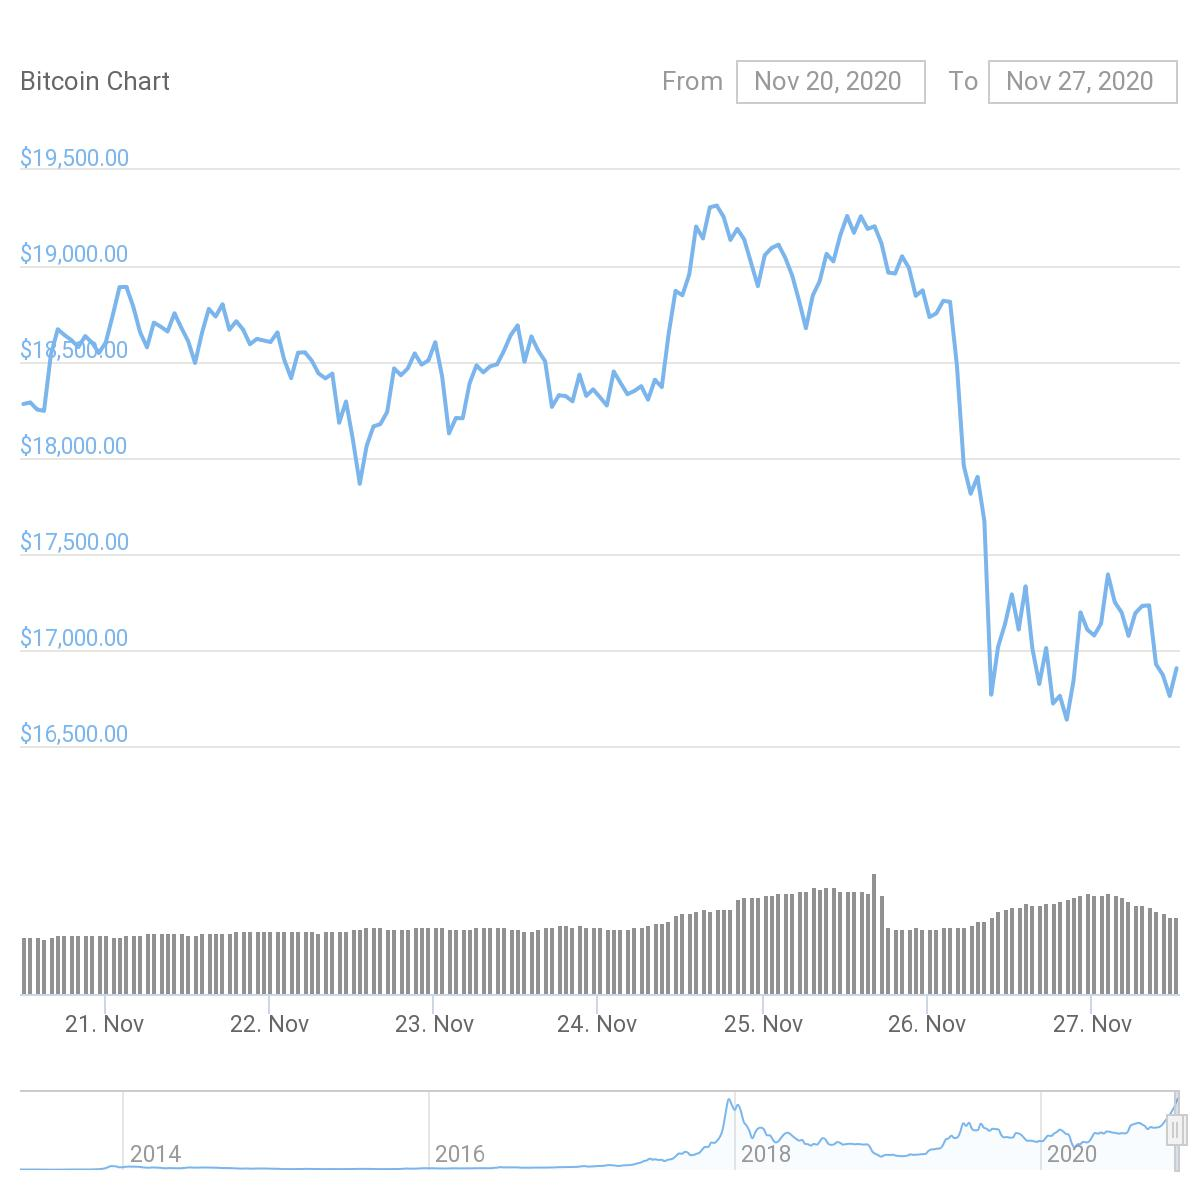 The price of BTC fell sharply alongside the Coinbase CEO's tweets